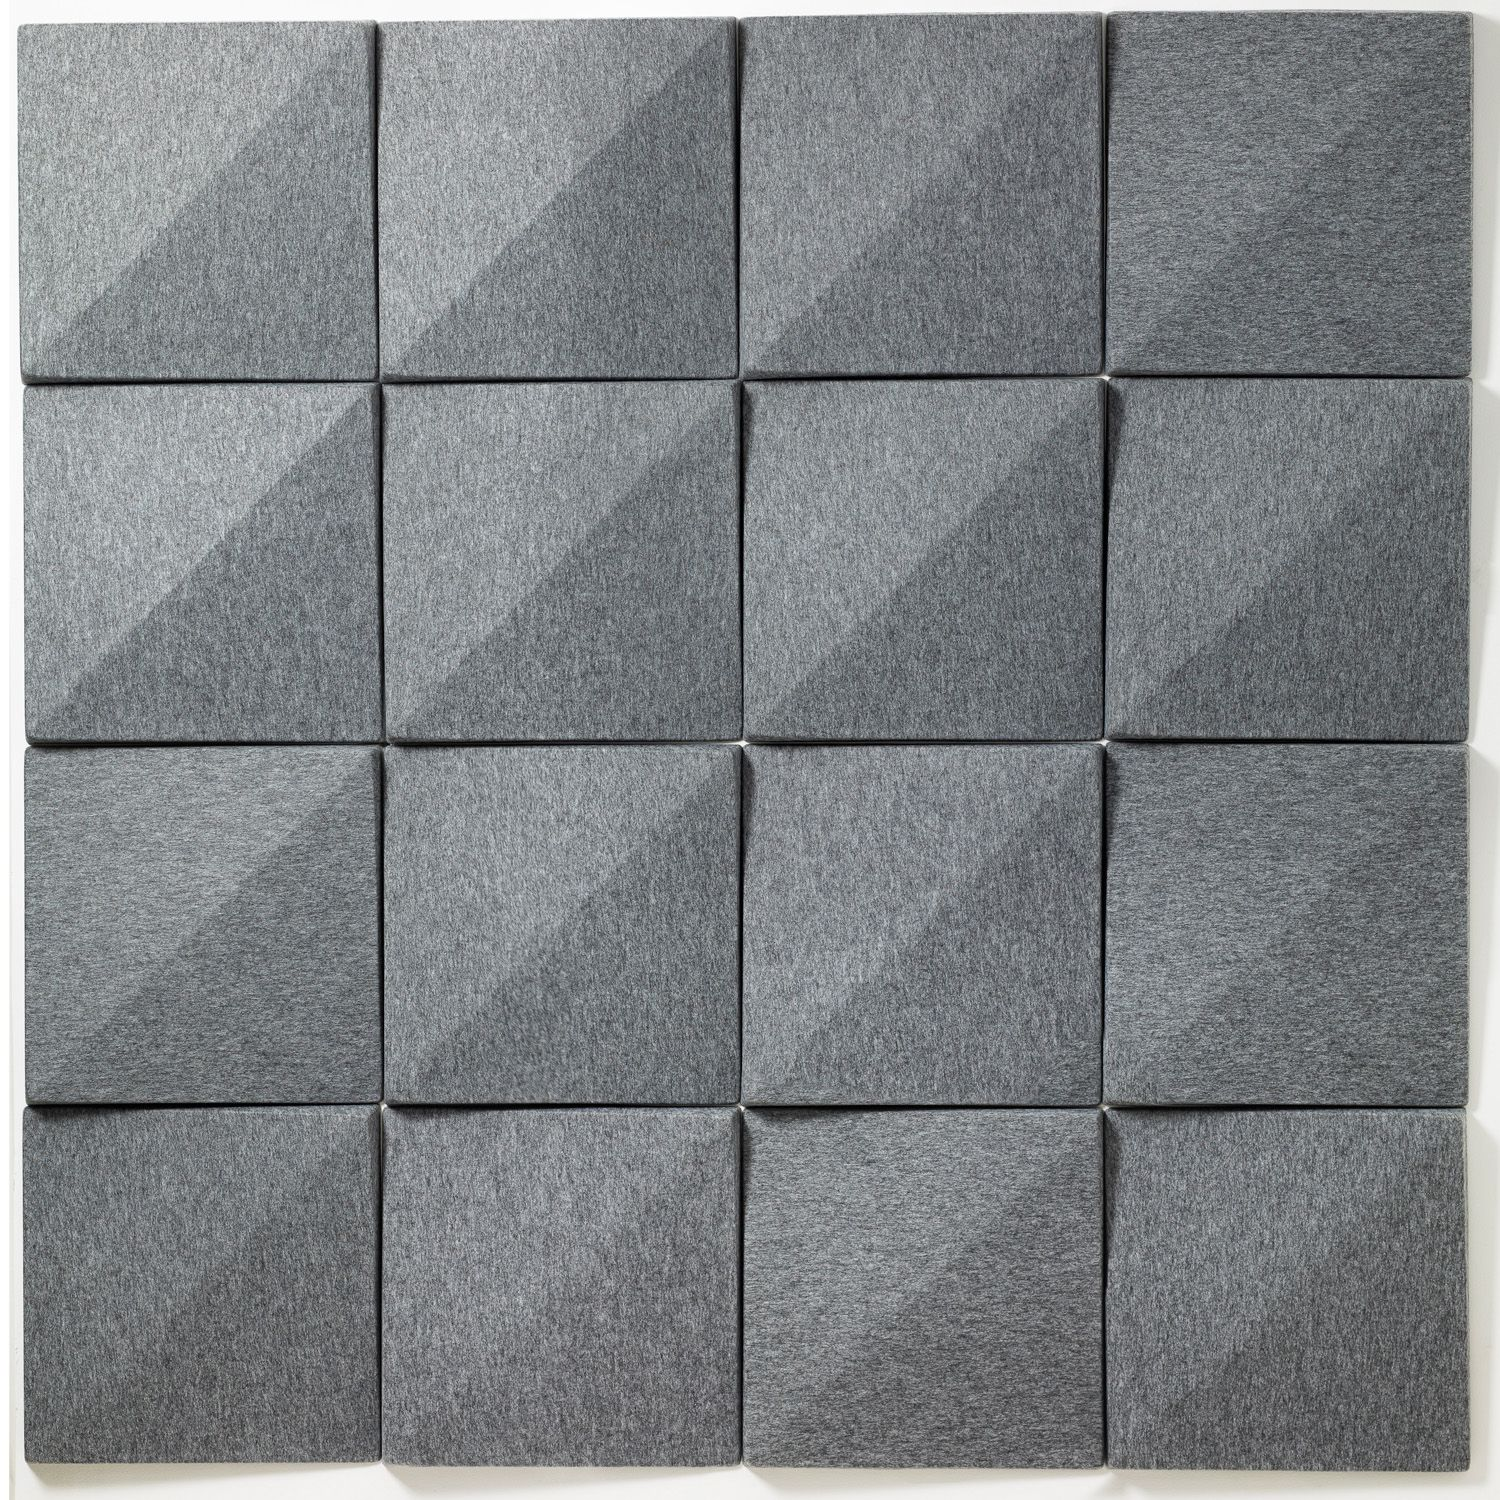 Offecct Bella Acoustic Wall Panel Http Www Apresfurniture Co